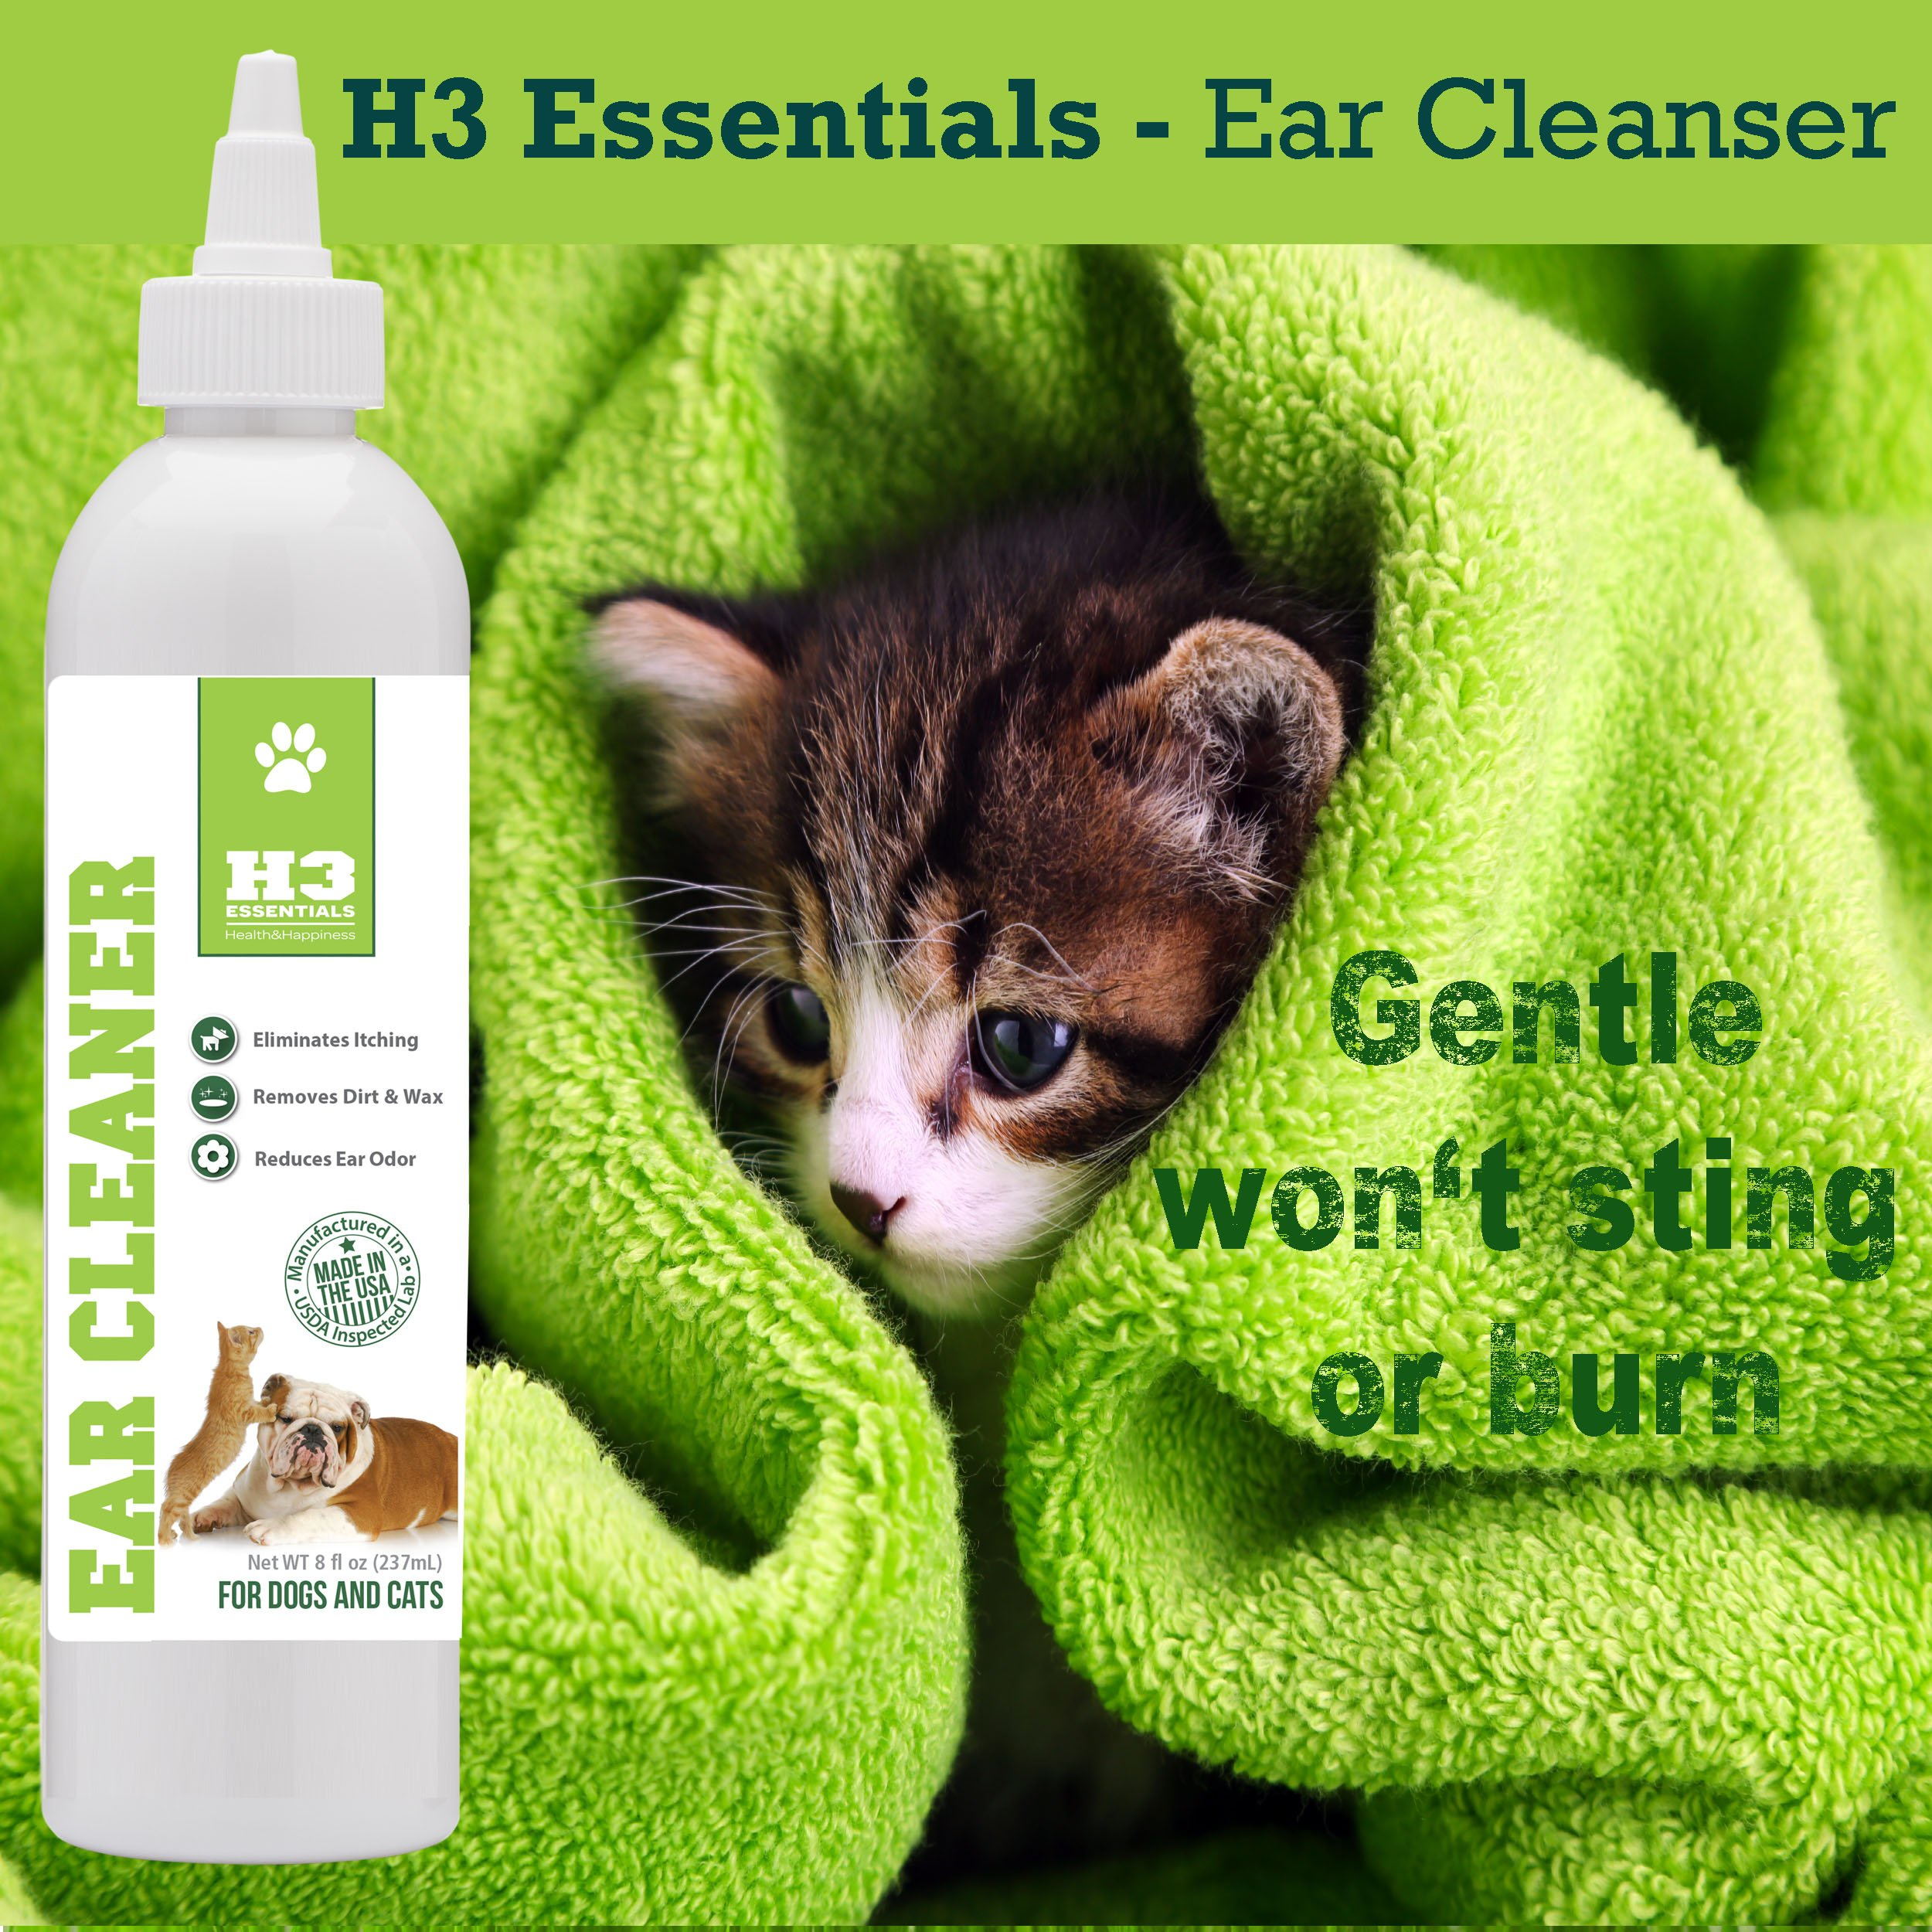 H3 Essentials Dog Ear Cleaner For Dogs and Cats with Aloe - Prevents Infection, Cleans and Dries Pets Ears - 8 oz by H3 Essentials (Image #7)